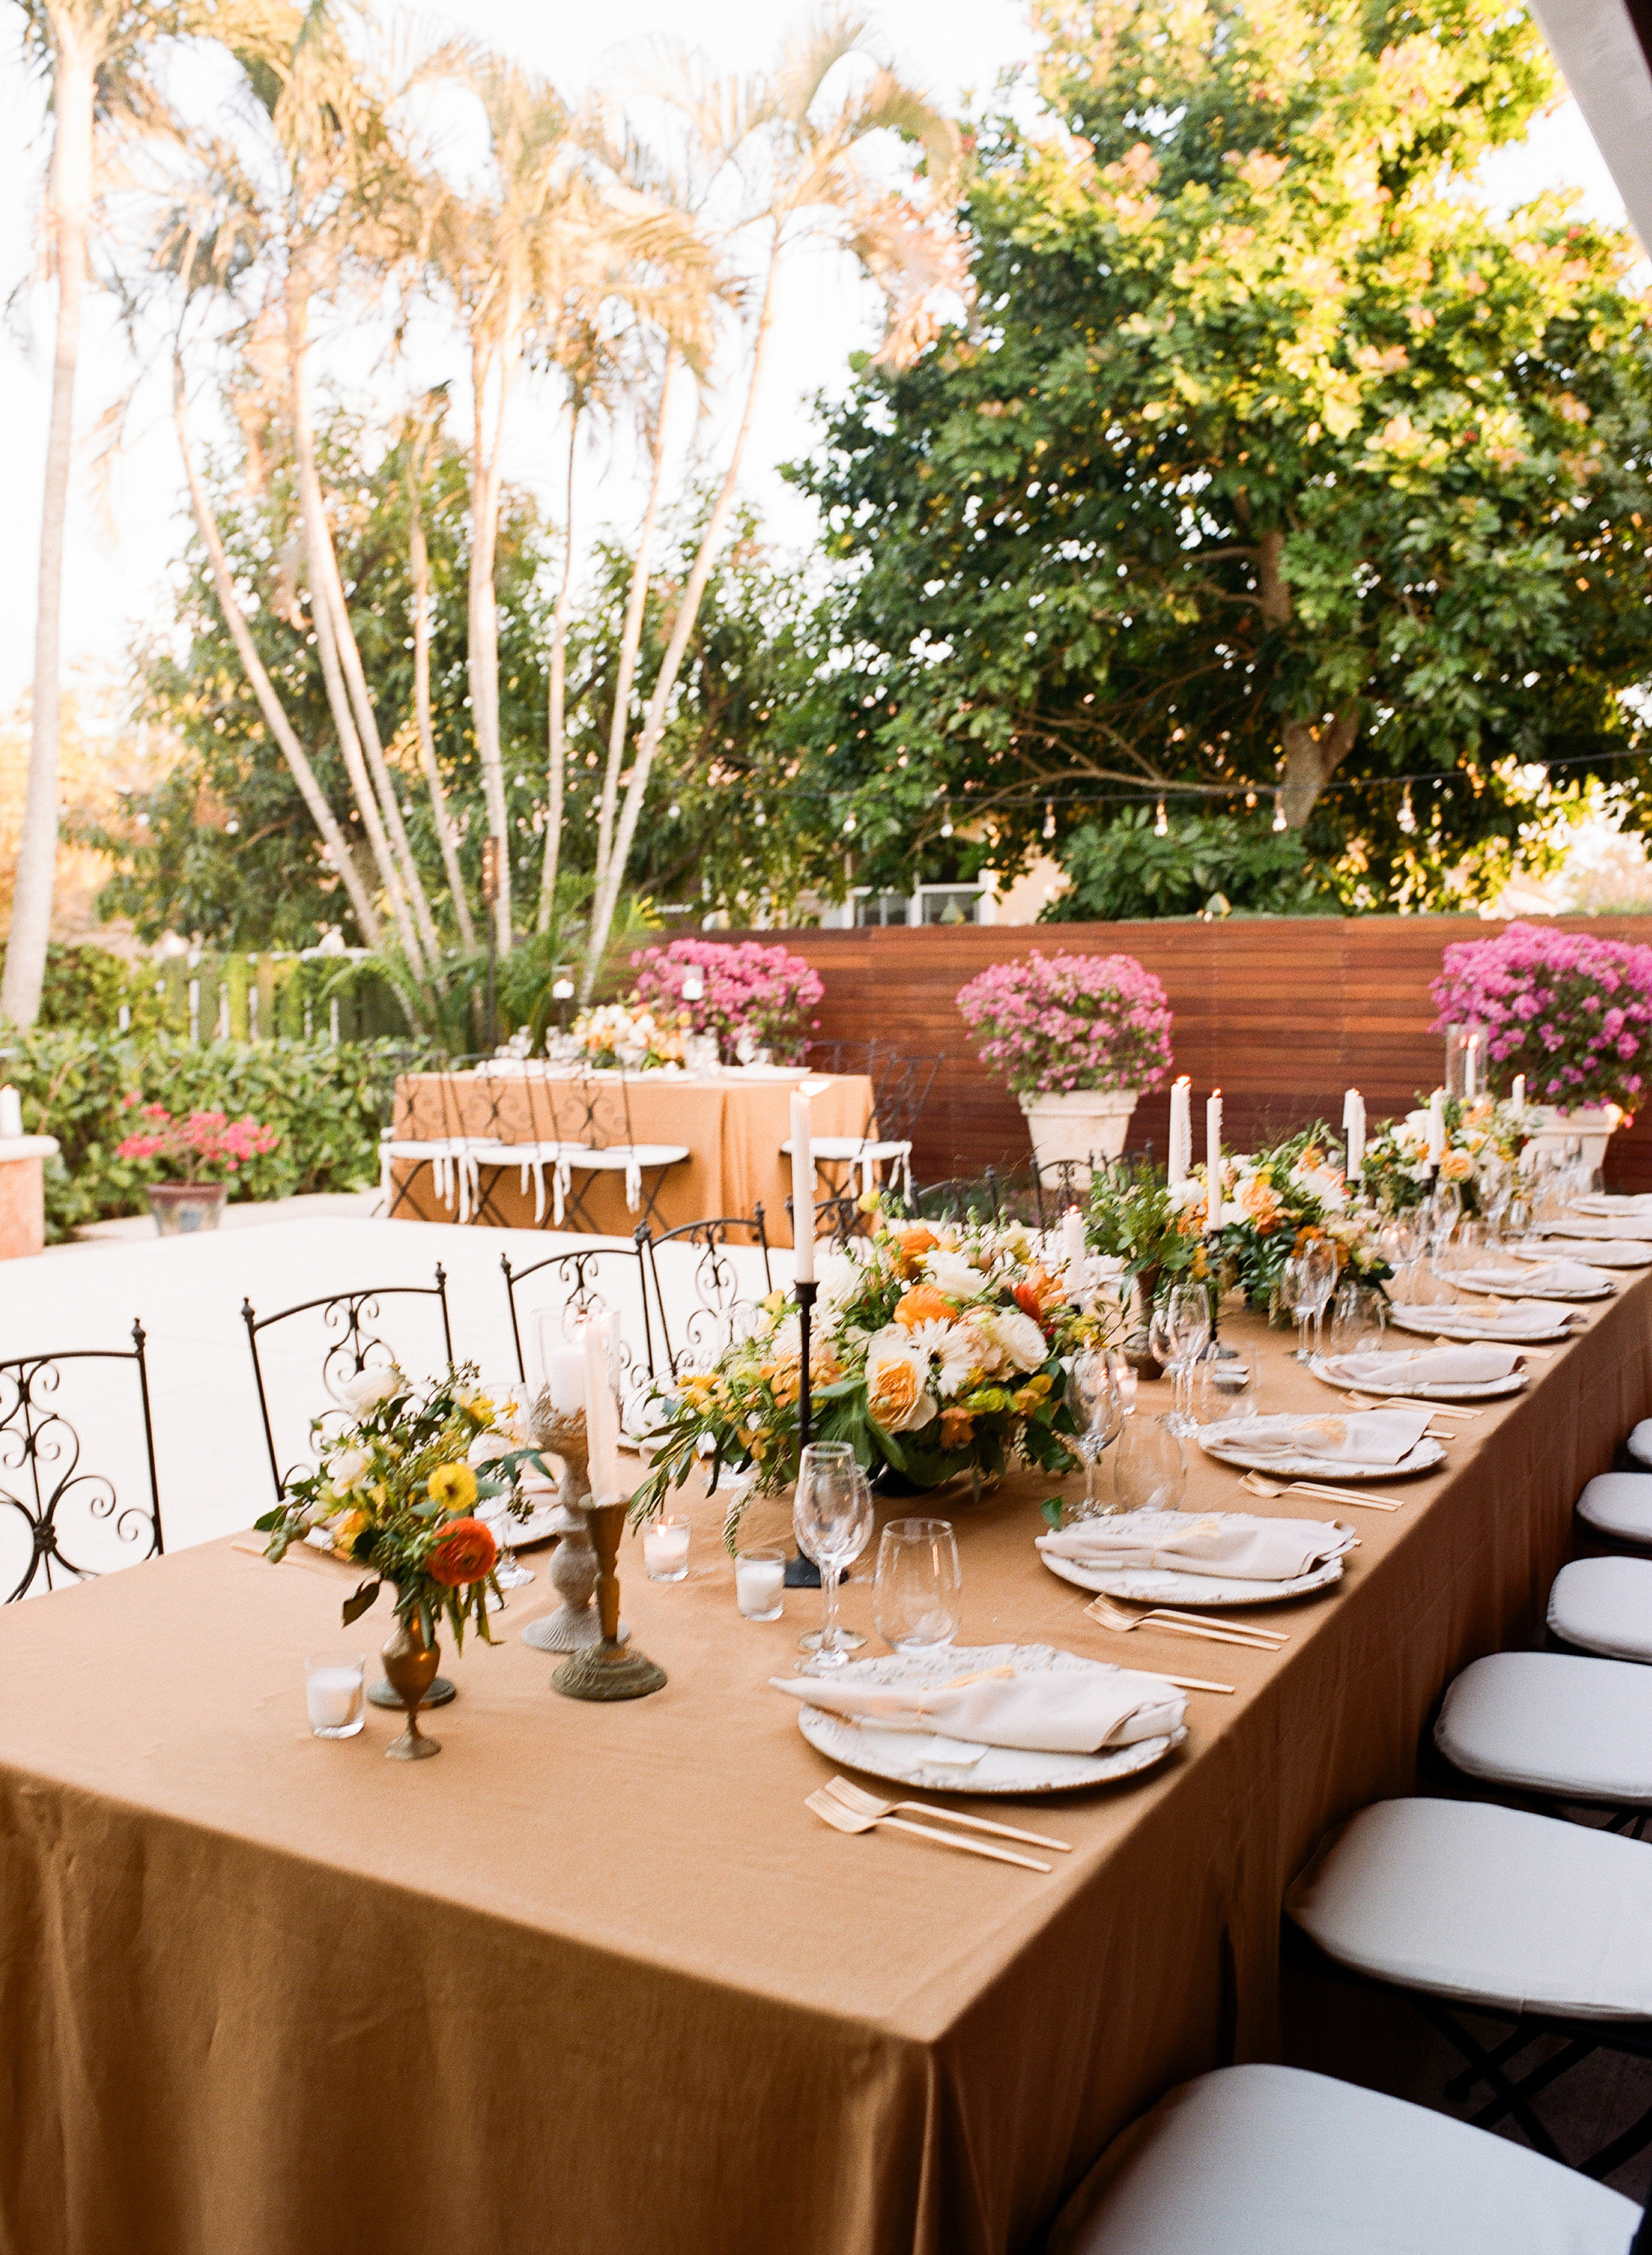 45-mexican-natural-wedding-reception.jpg